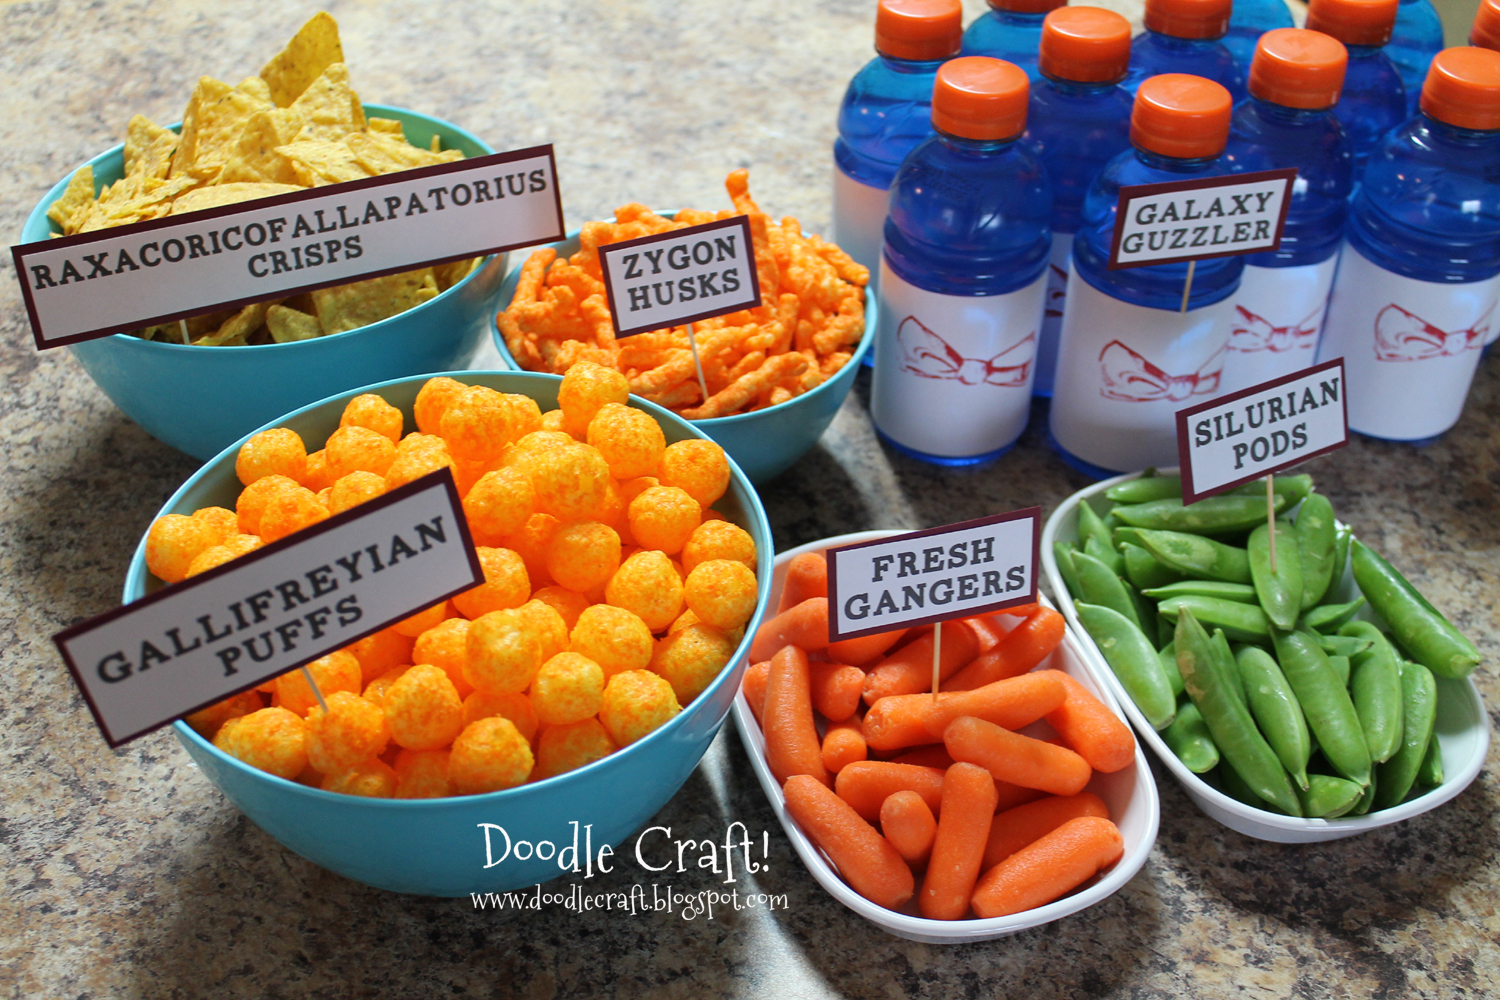 Doodlecraft Doctor Who Party Week Food Snacks Recipes And Treats